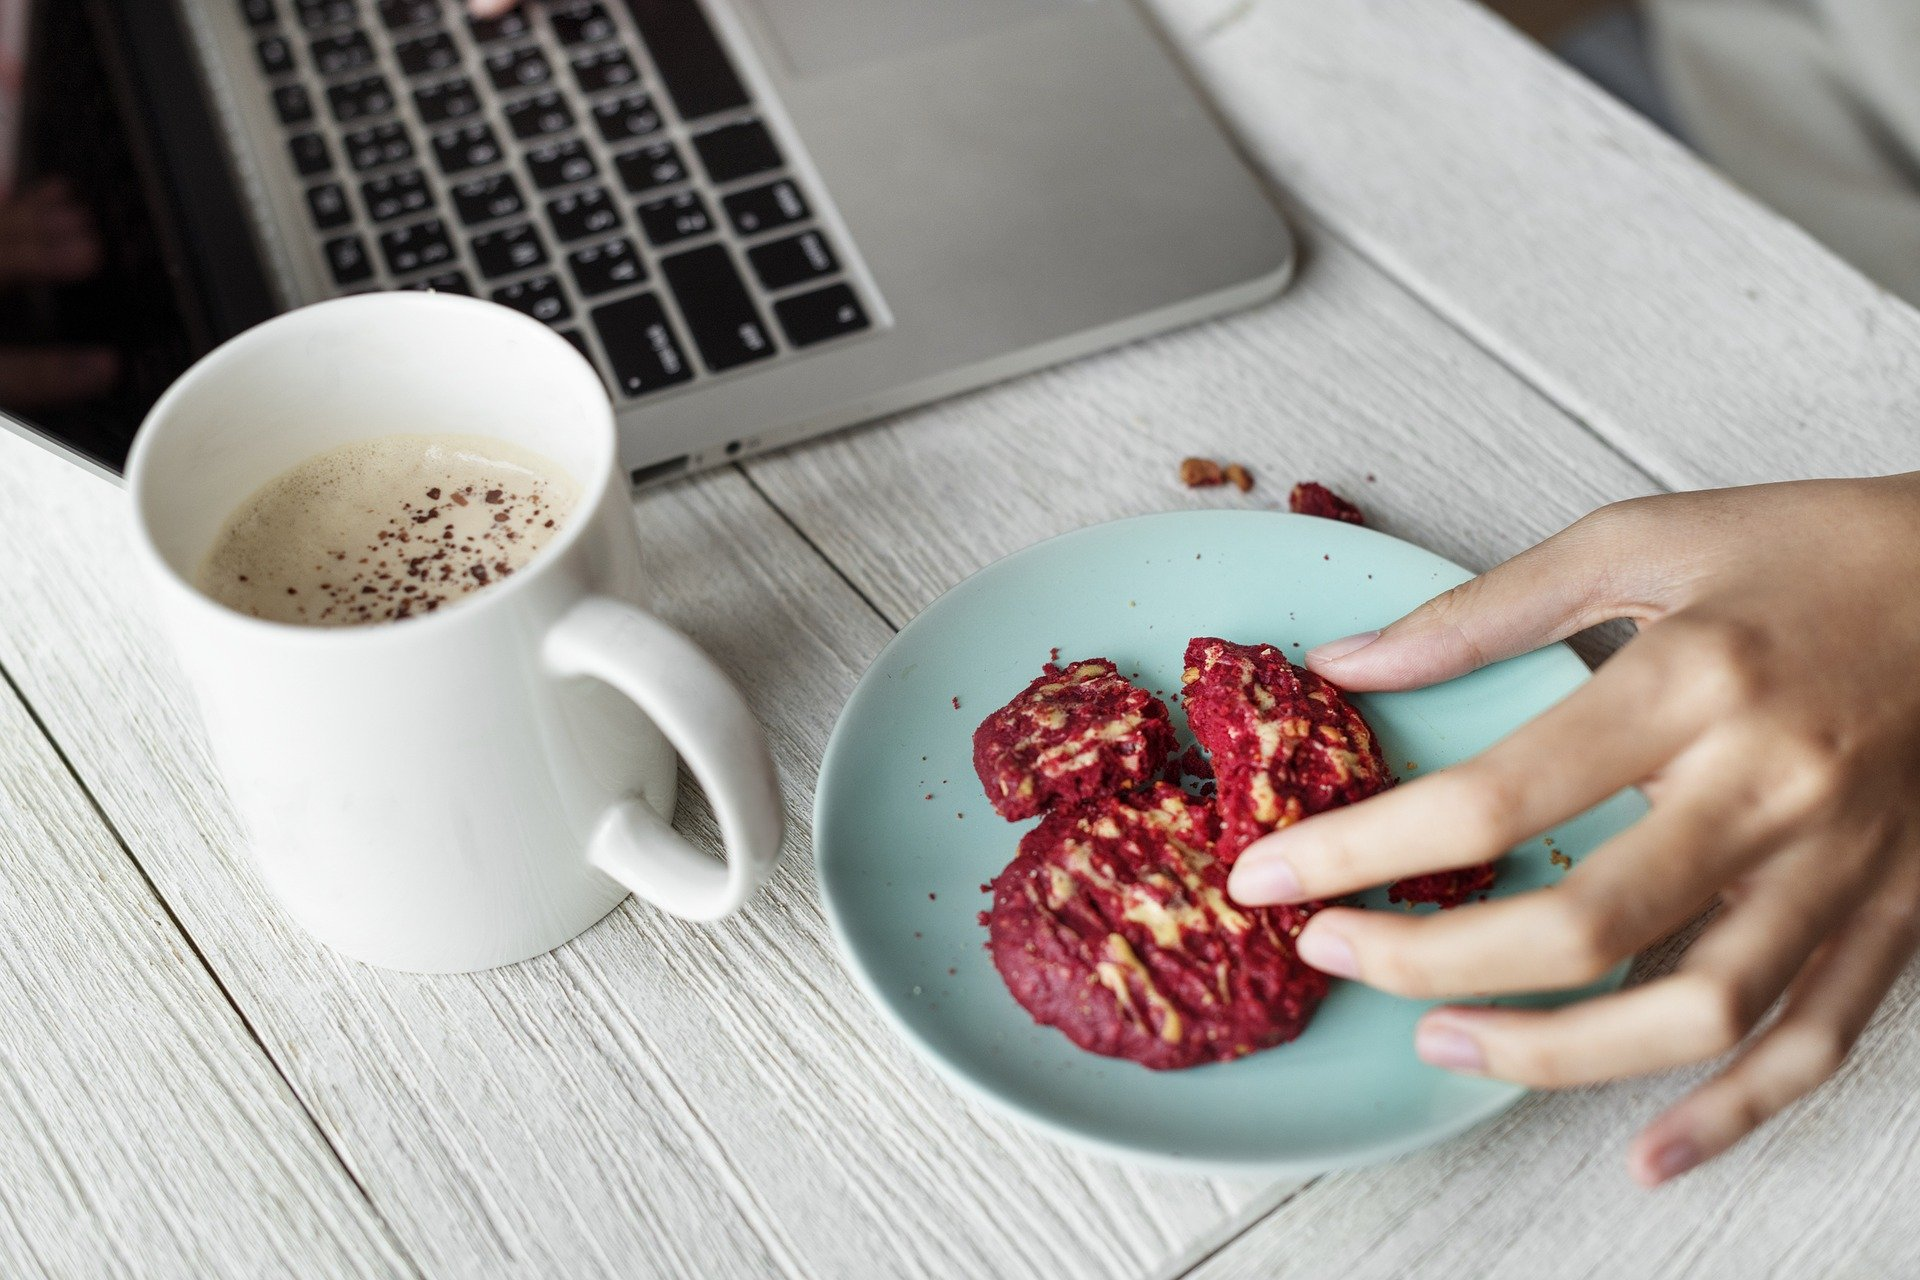 Fare il blogging per vivere. Come diventare uno food blogger?